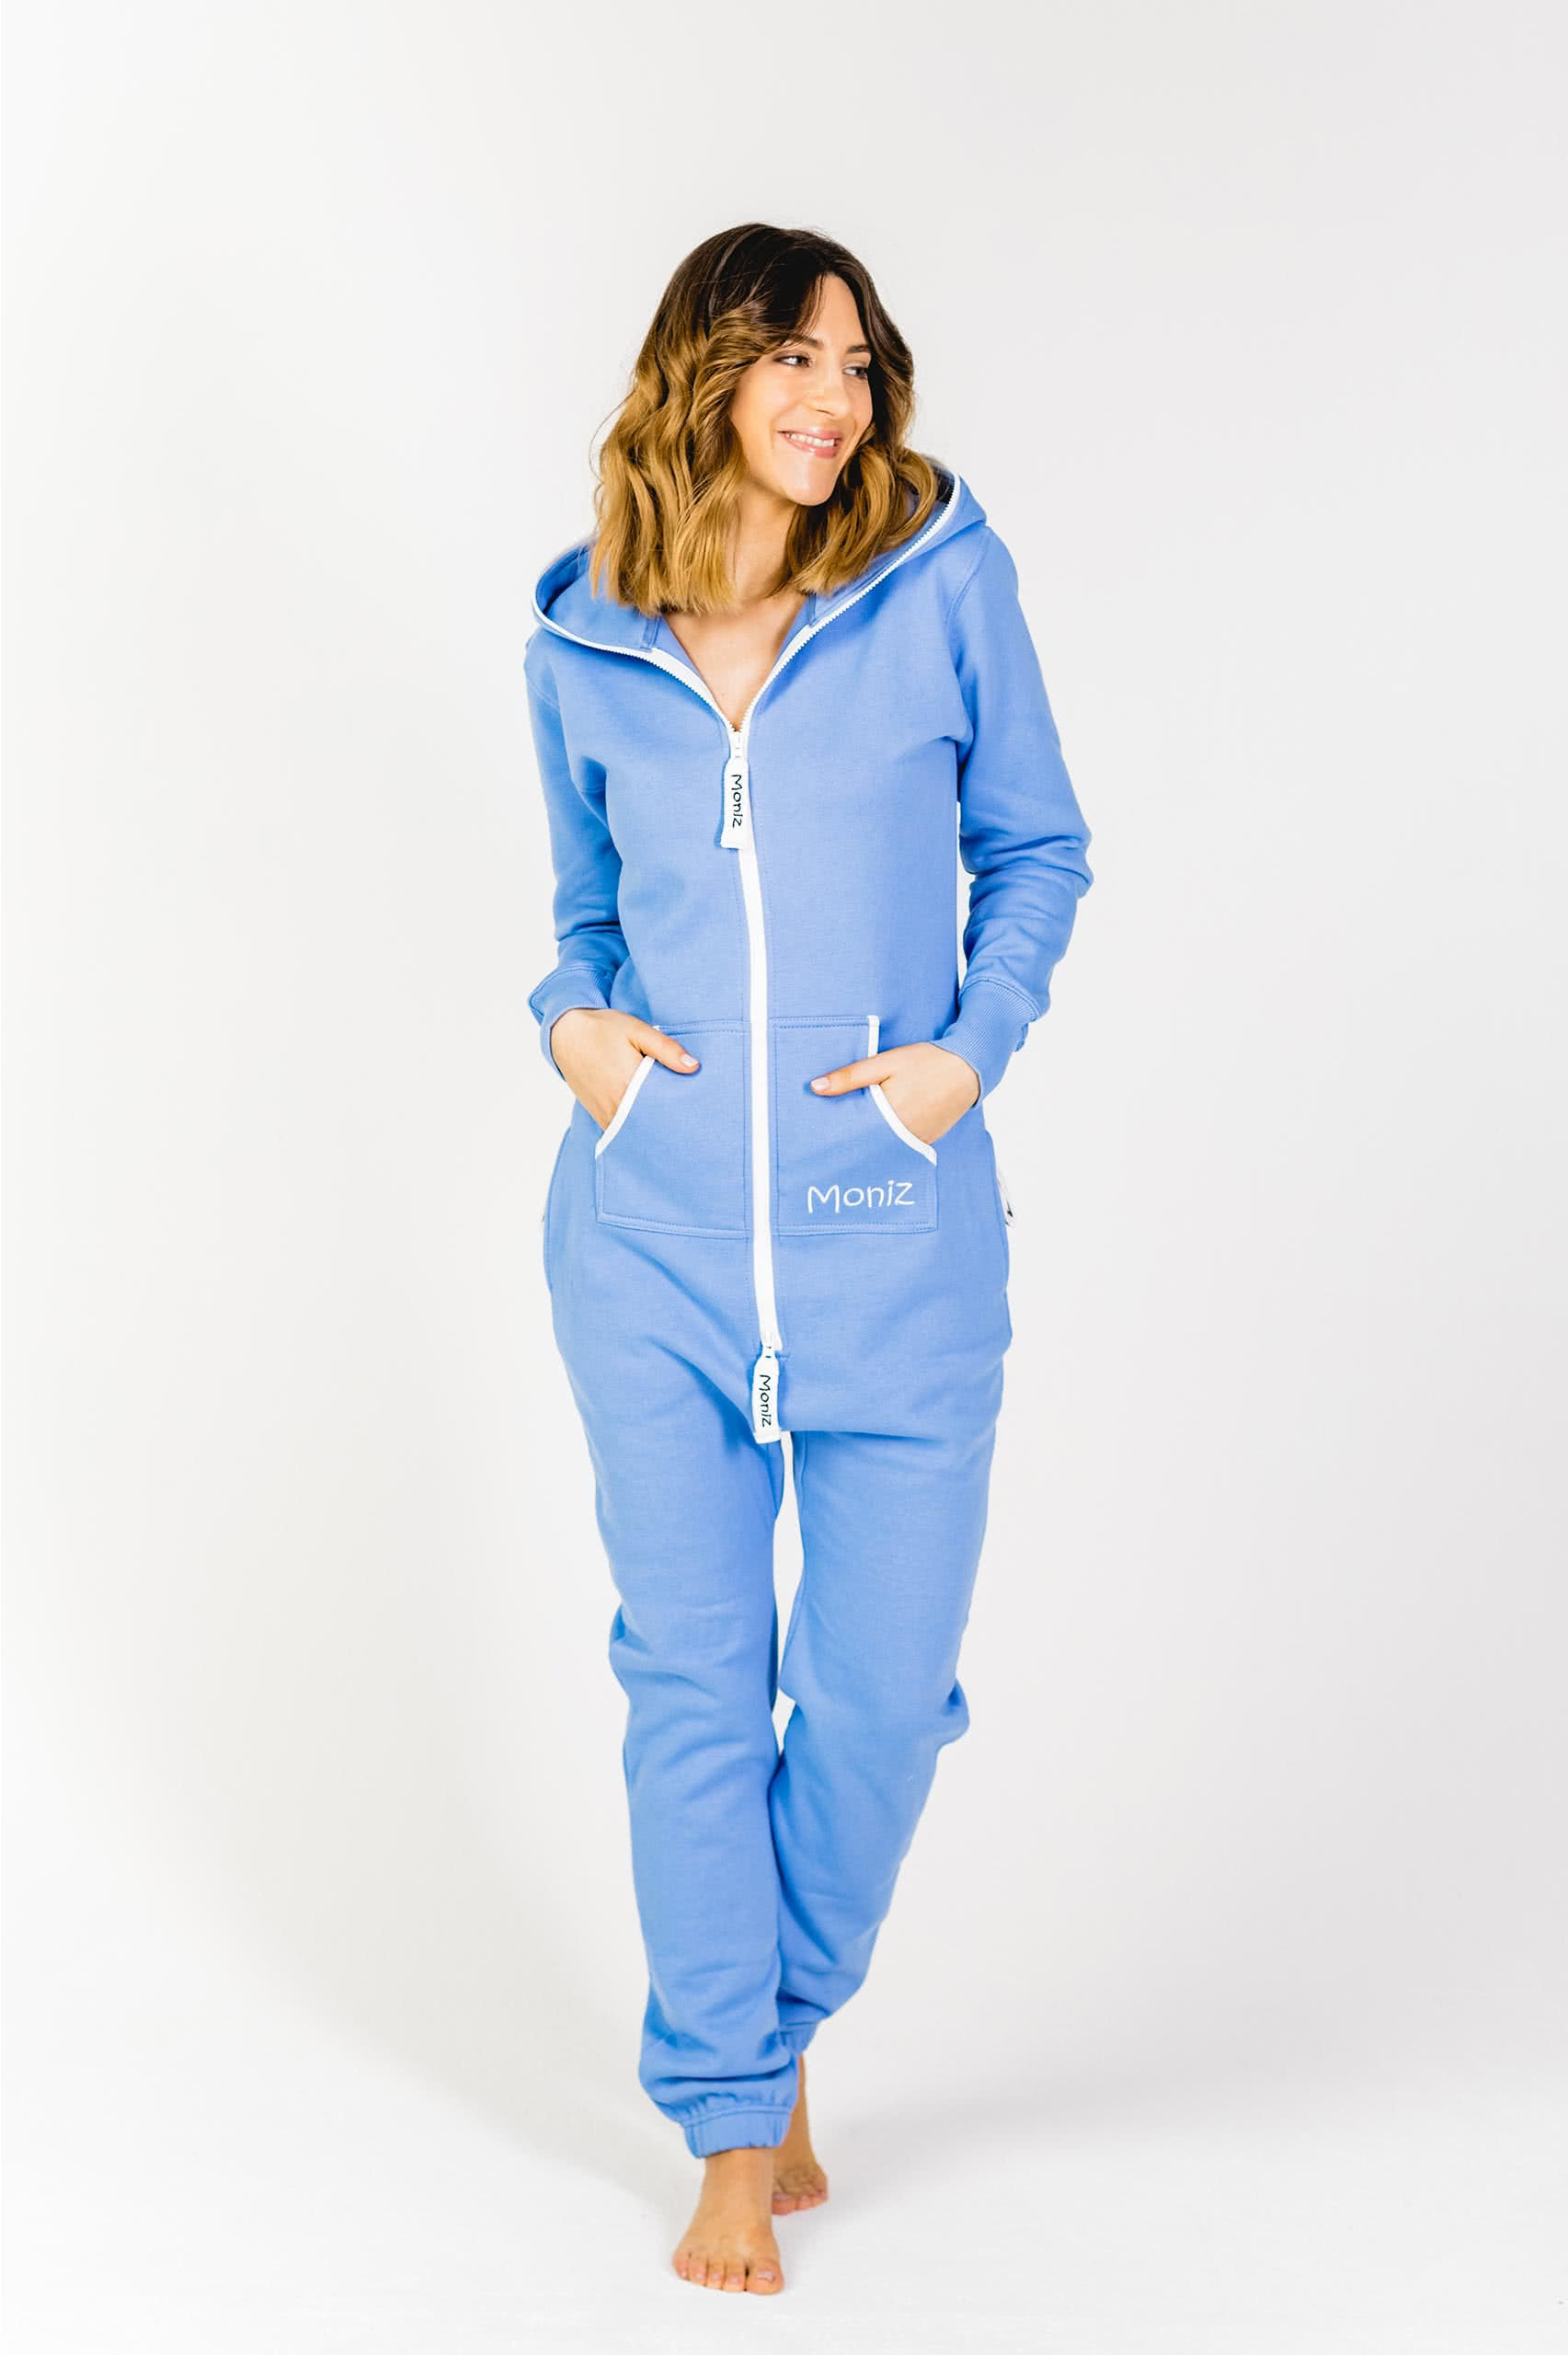 Moniz Damen Jumpsuit Graublau - Beach Blue